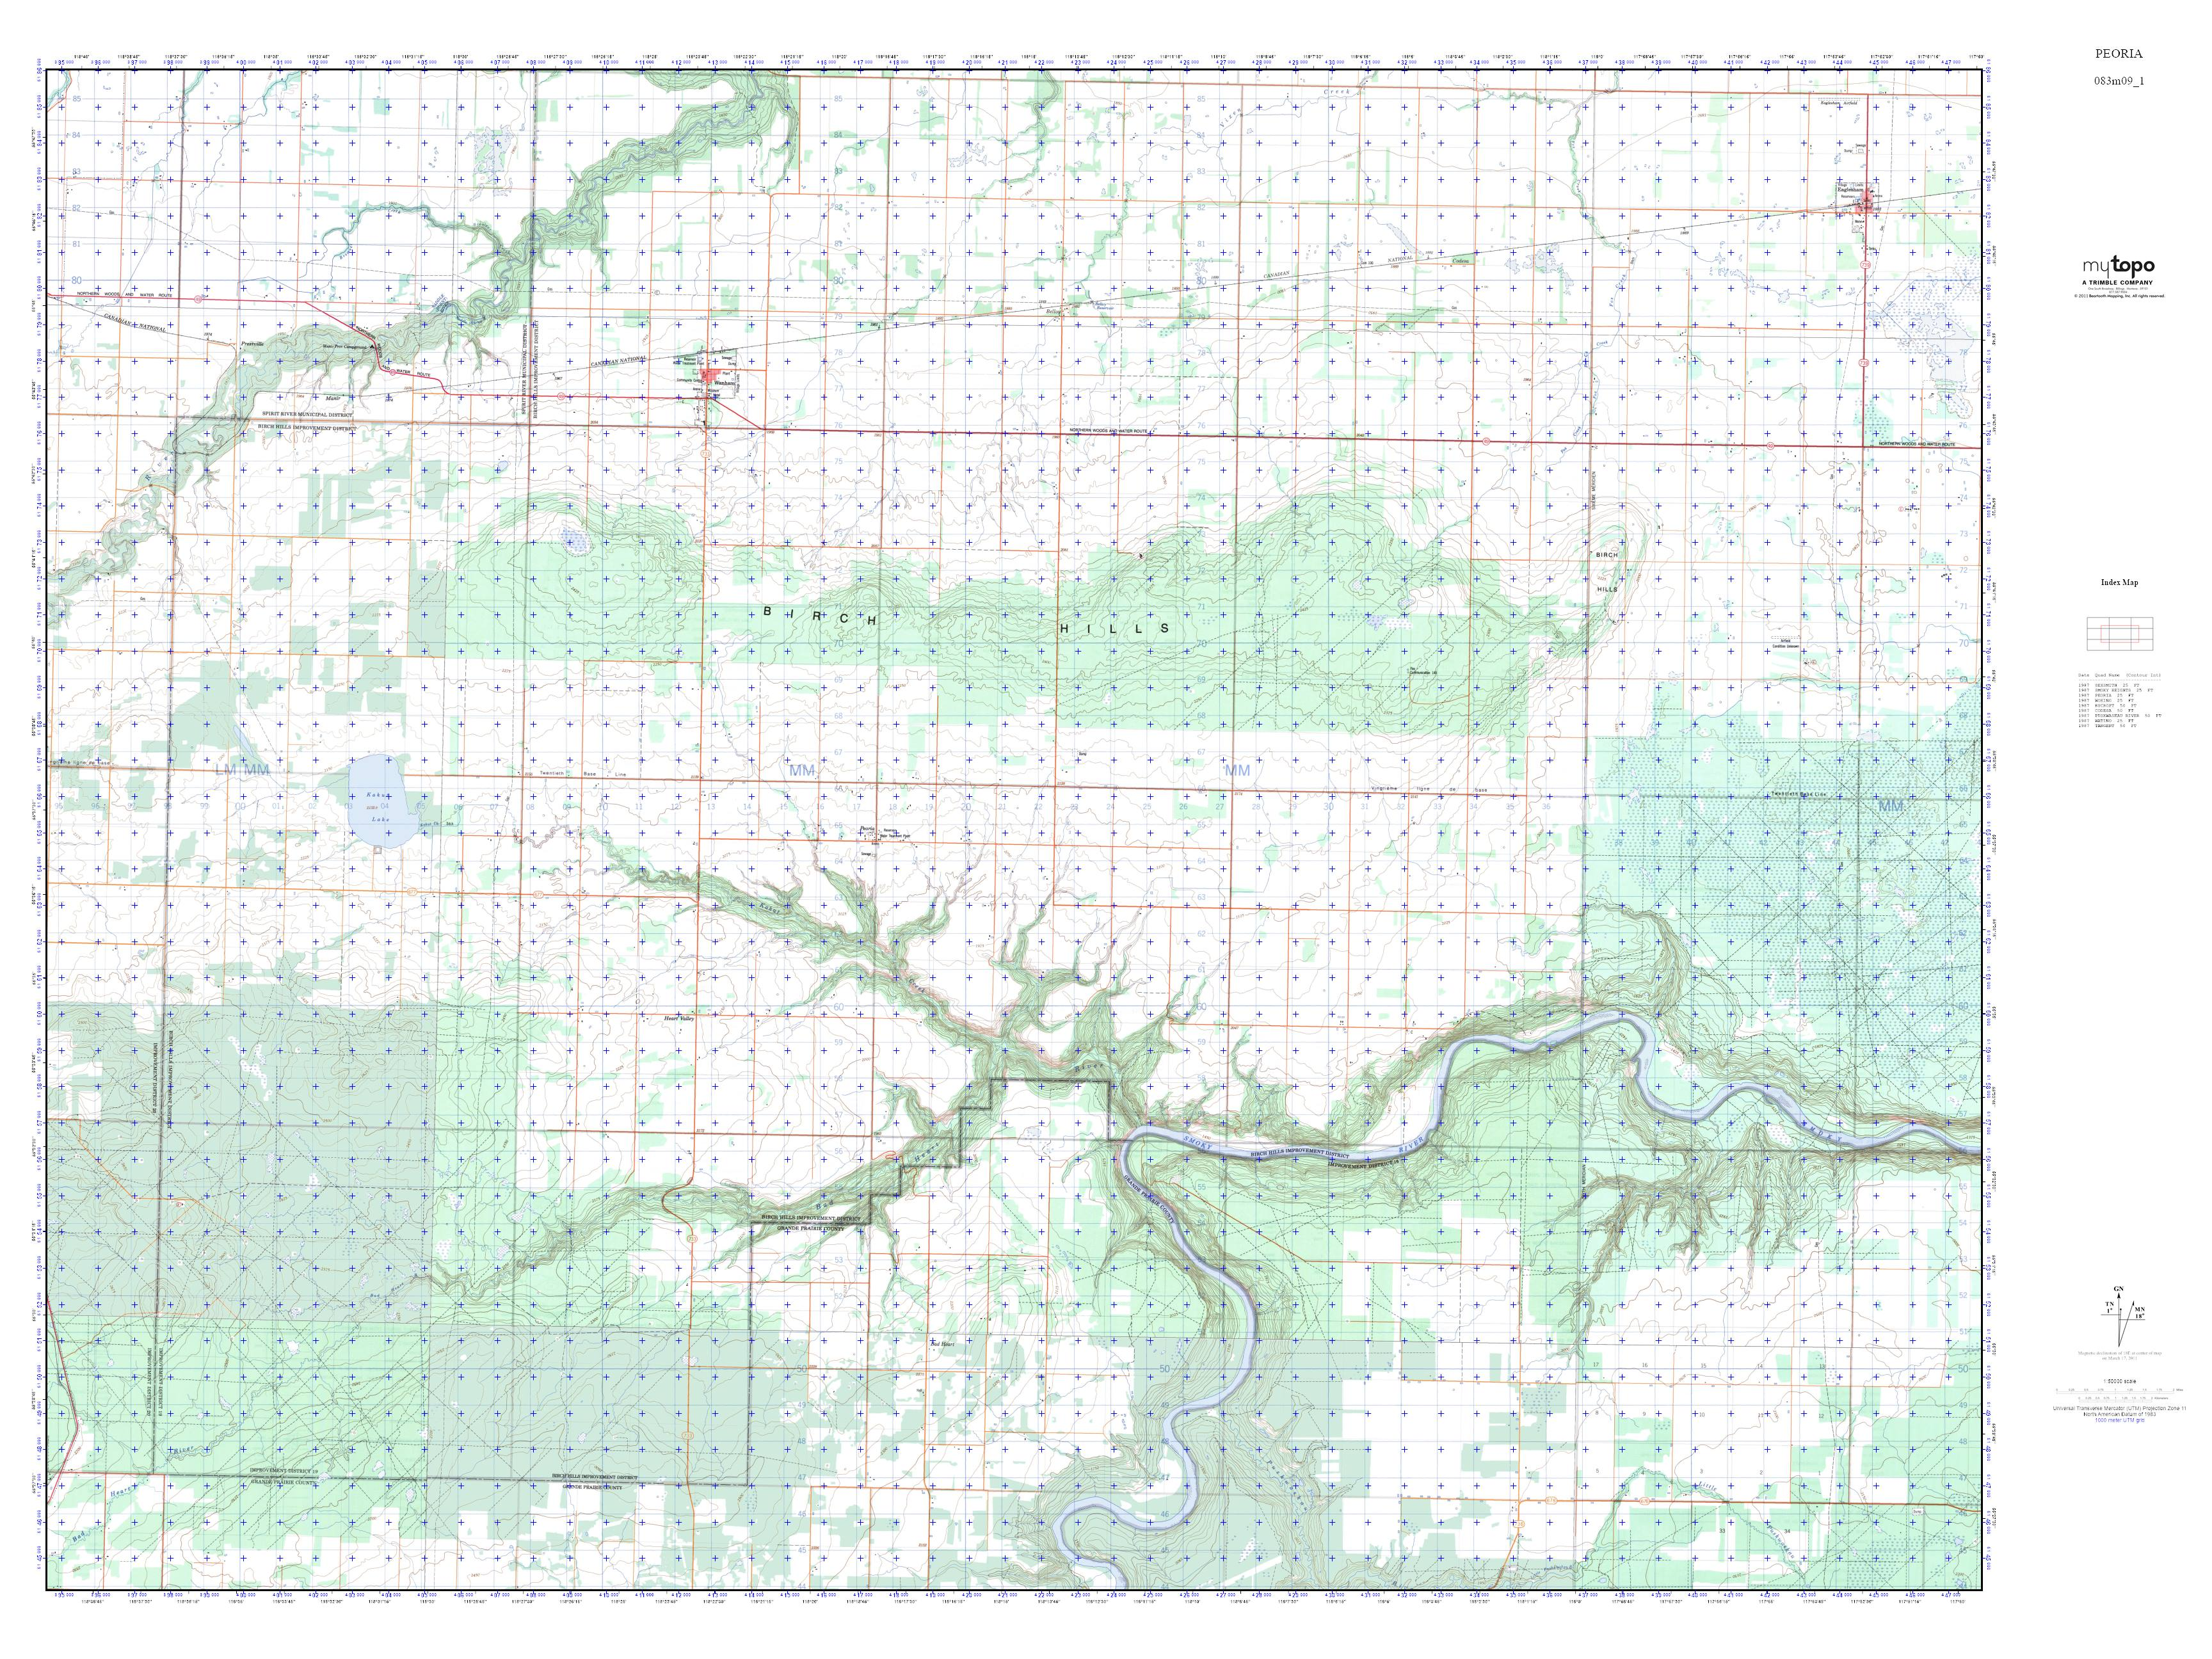 MyTopo PEORIA, Alberta USGS Quad Topo Map on new york city map, winslow in map, duquoin map, sun city az street map, rockford il map, sun lakes az street map, san francisco to los angeles map, chicago hts map, tartesso map, city of garden grove map, anshan map, pekin street map, norman map, san juan pr map, beckley map, cincinnati map, providence map, saint louis city map, sun city grand map, pascagoula map,